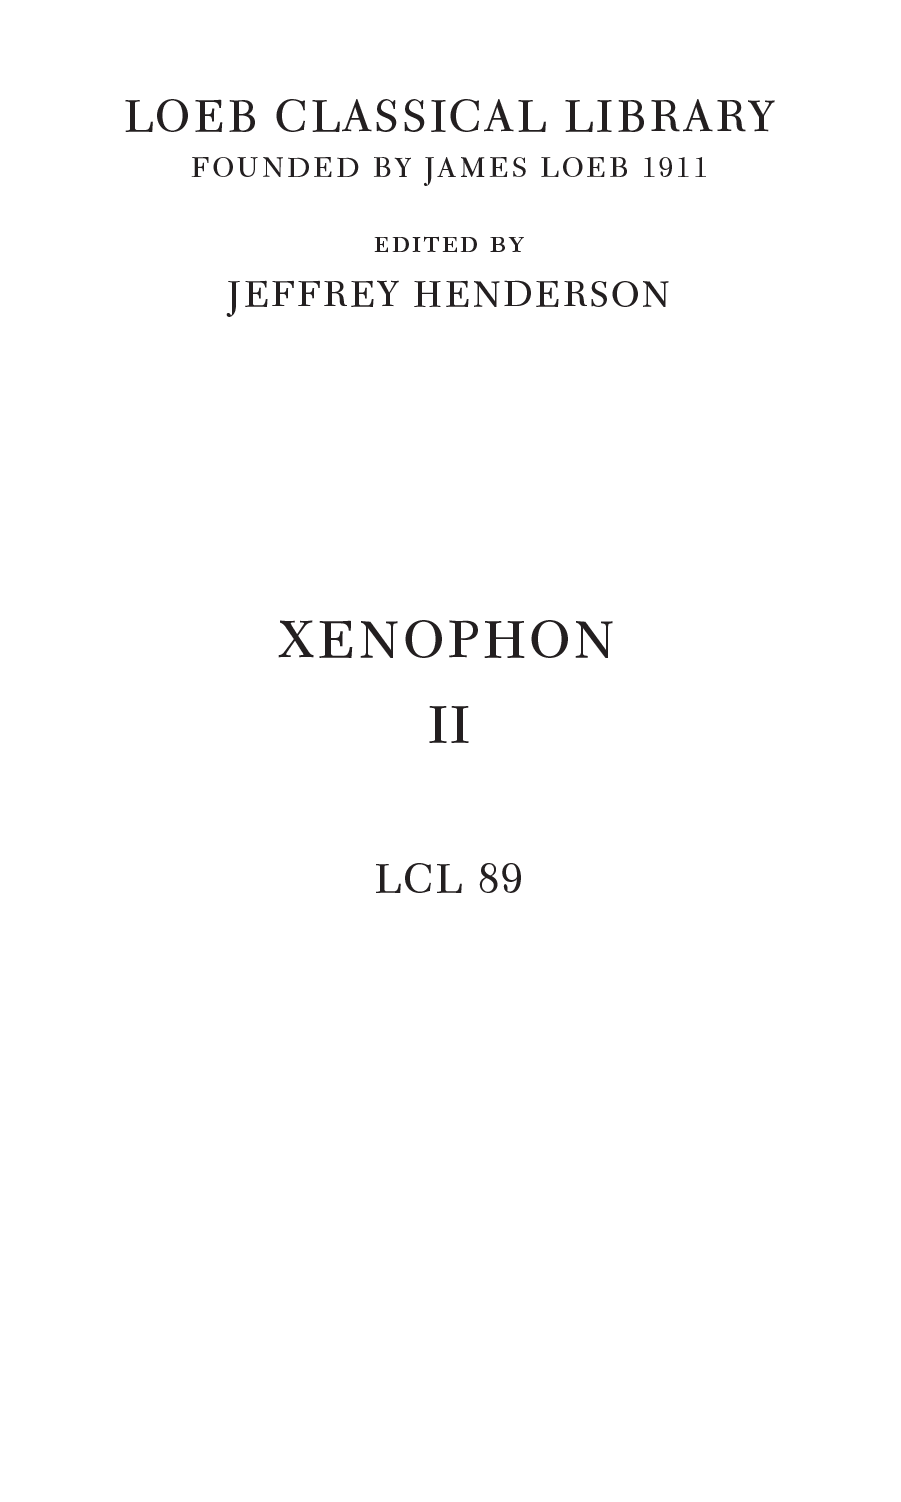 LOEB CLASSICAL LIBRARY FOUNDED BY JAMES LOEB 1911 edited by JEFFREY HENDERSON XENOPHON II LCL 89